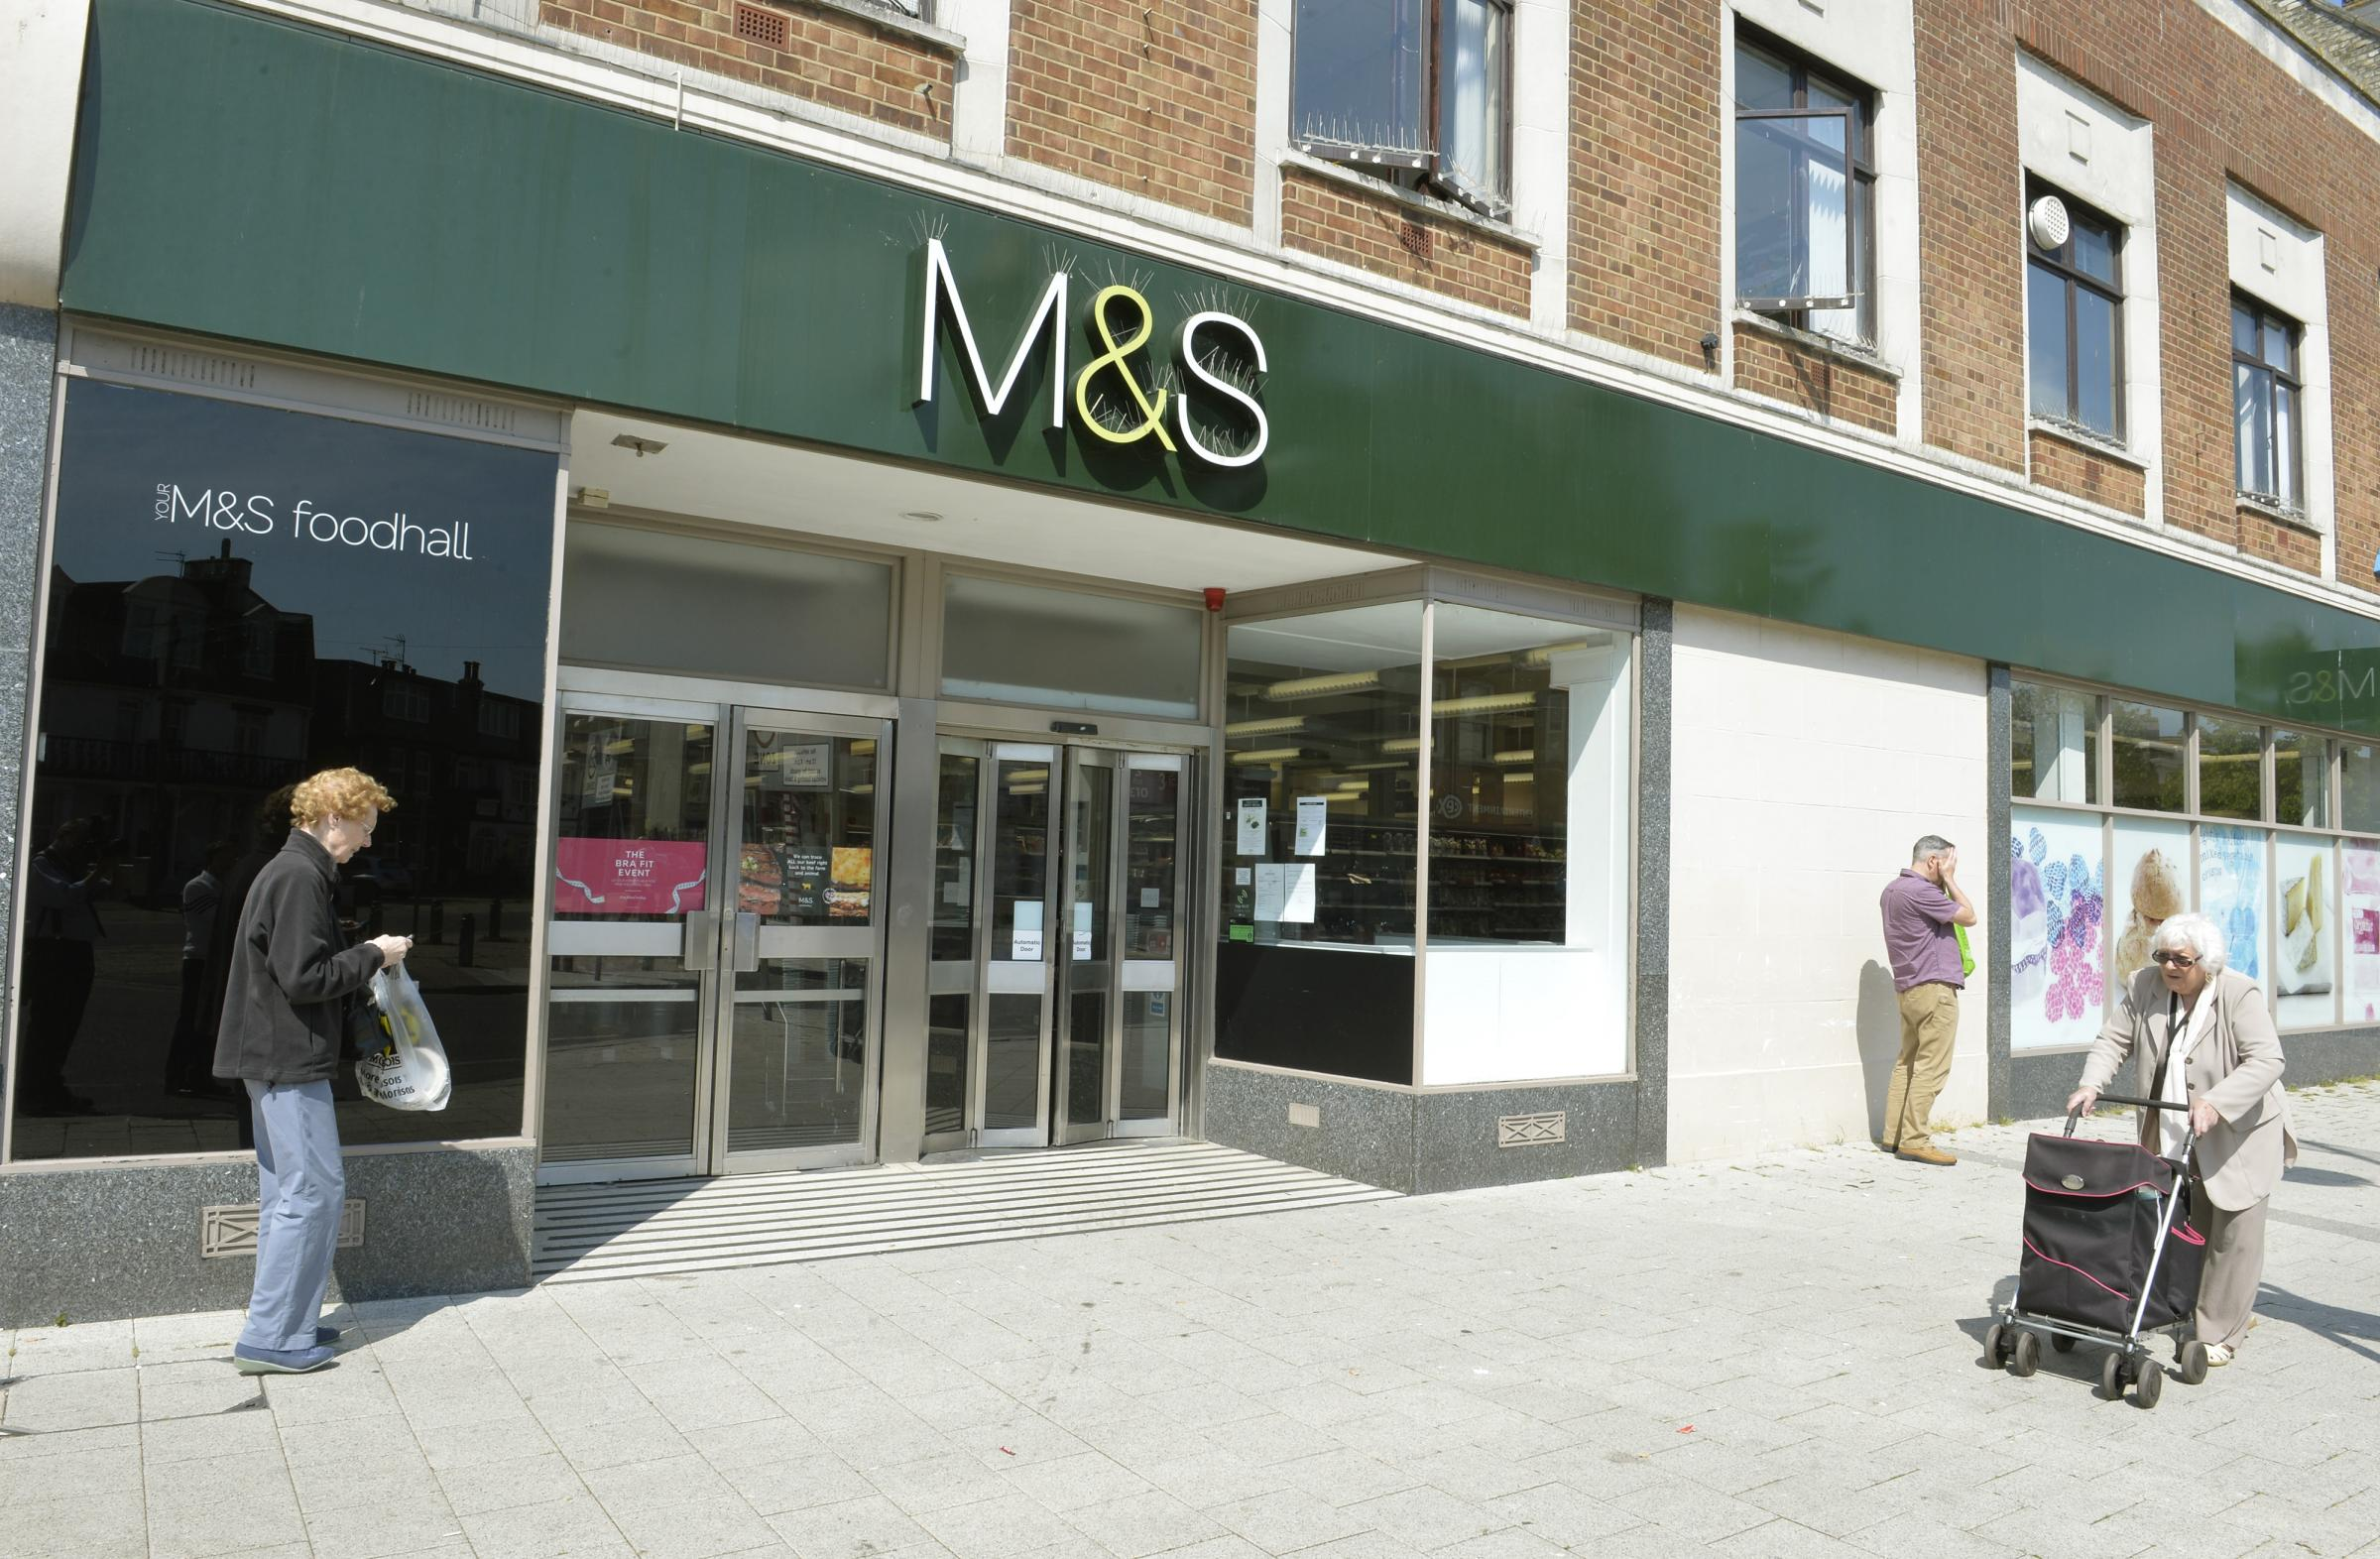 Set to close: Marks and Spencer will be closing its store in Clacton next year